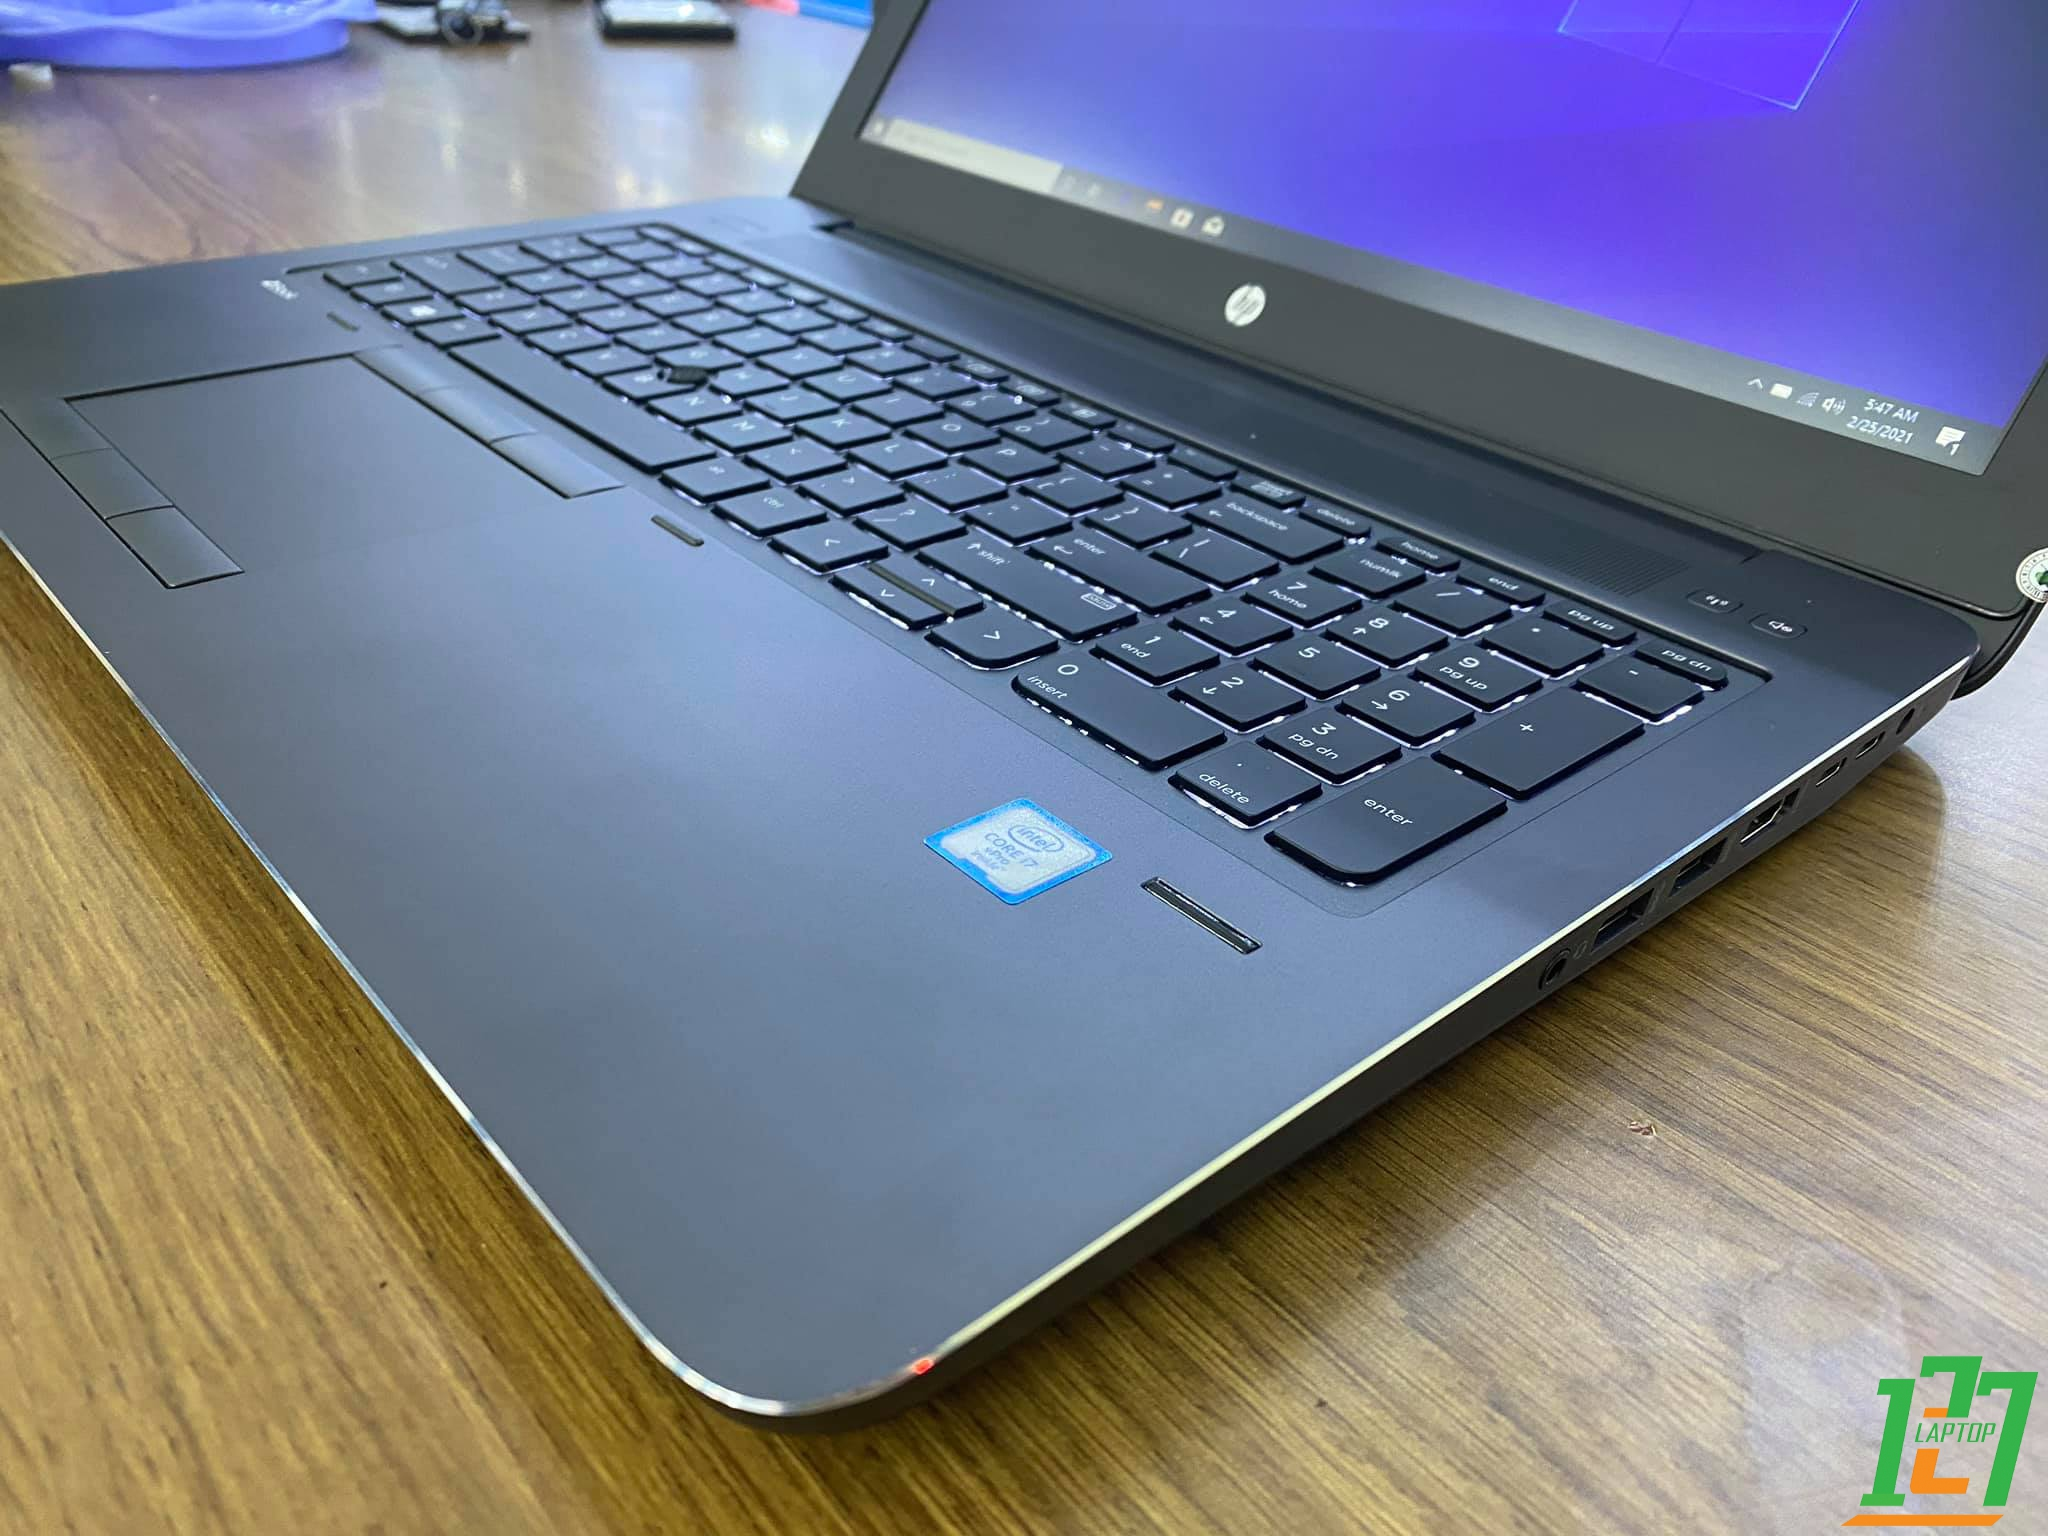 HP Mobile Workstation Zbook 15 G3